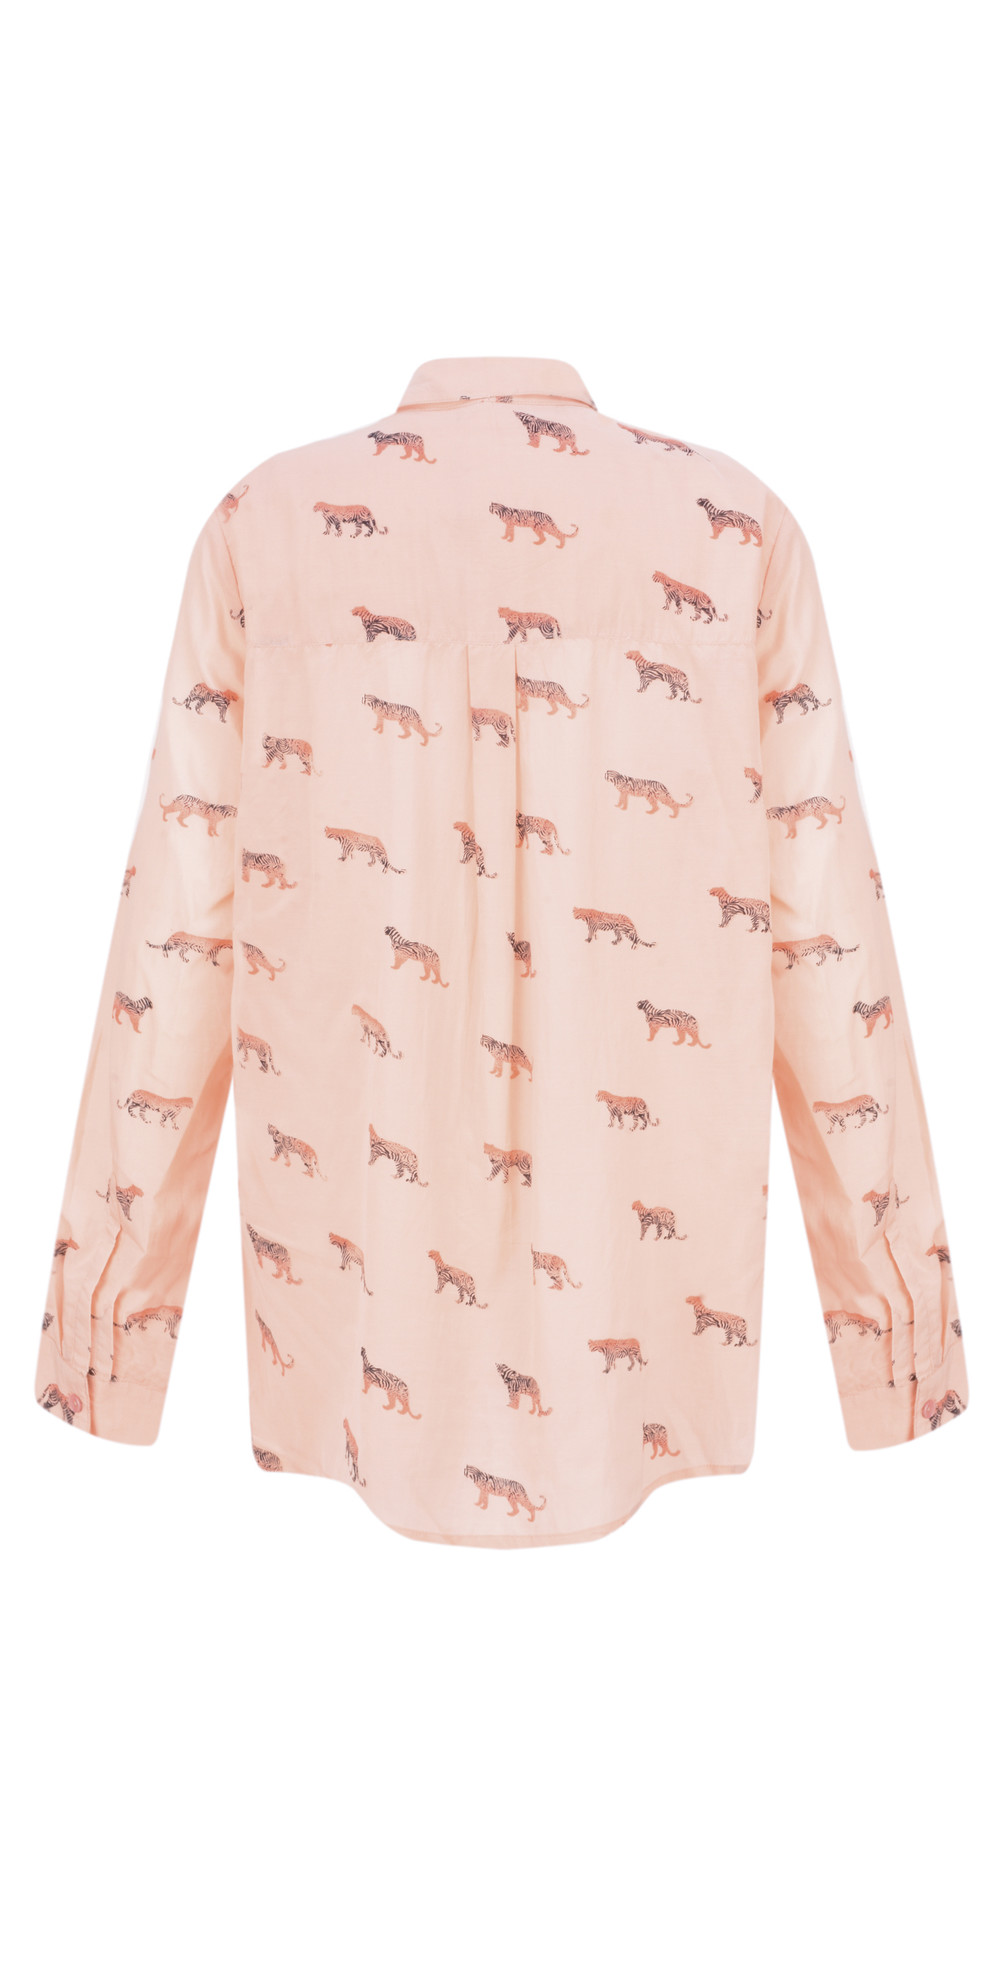 Animal Blouse main image